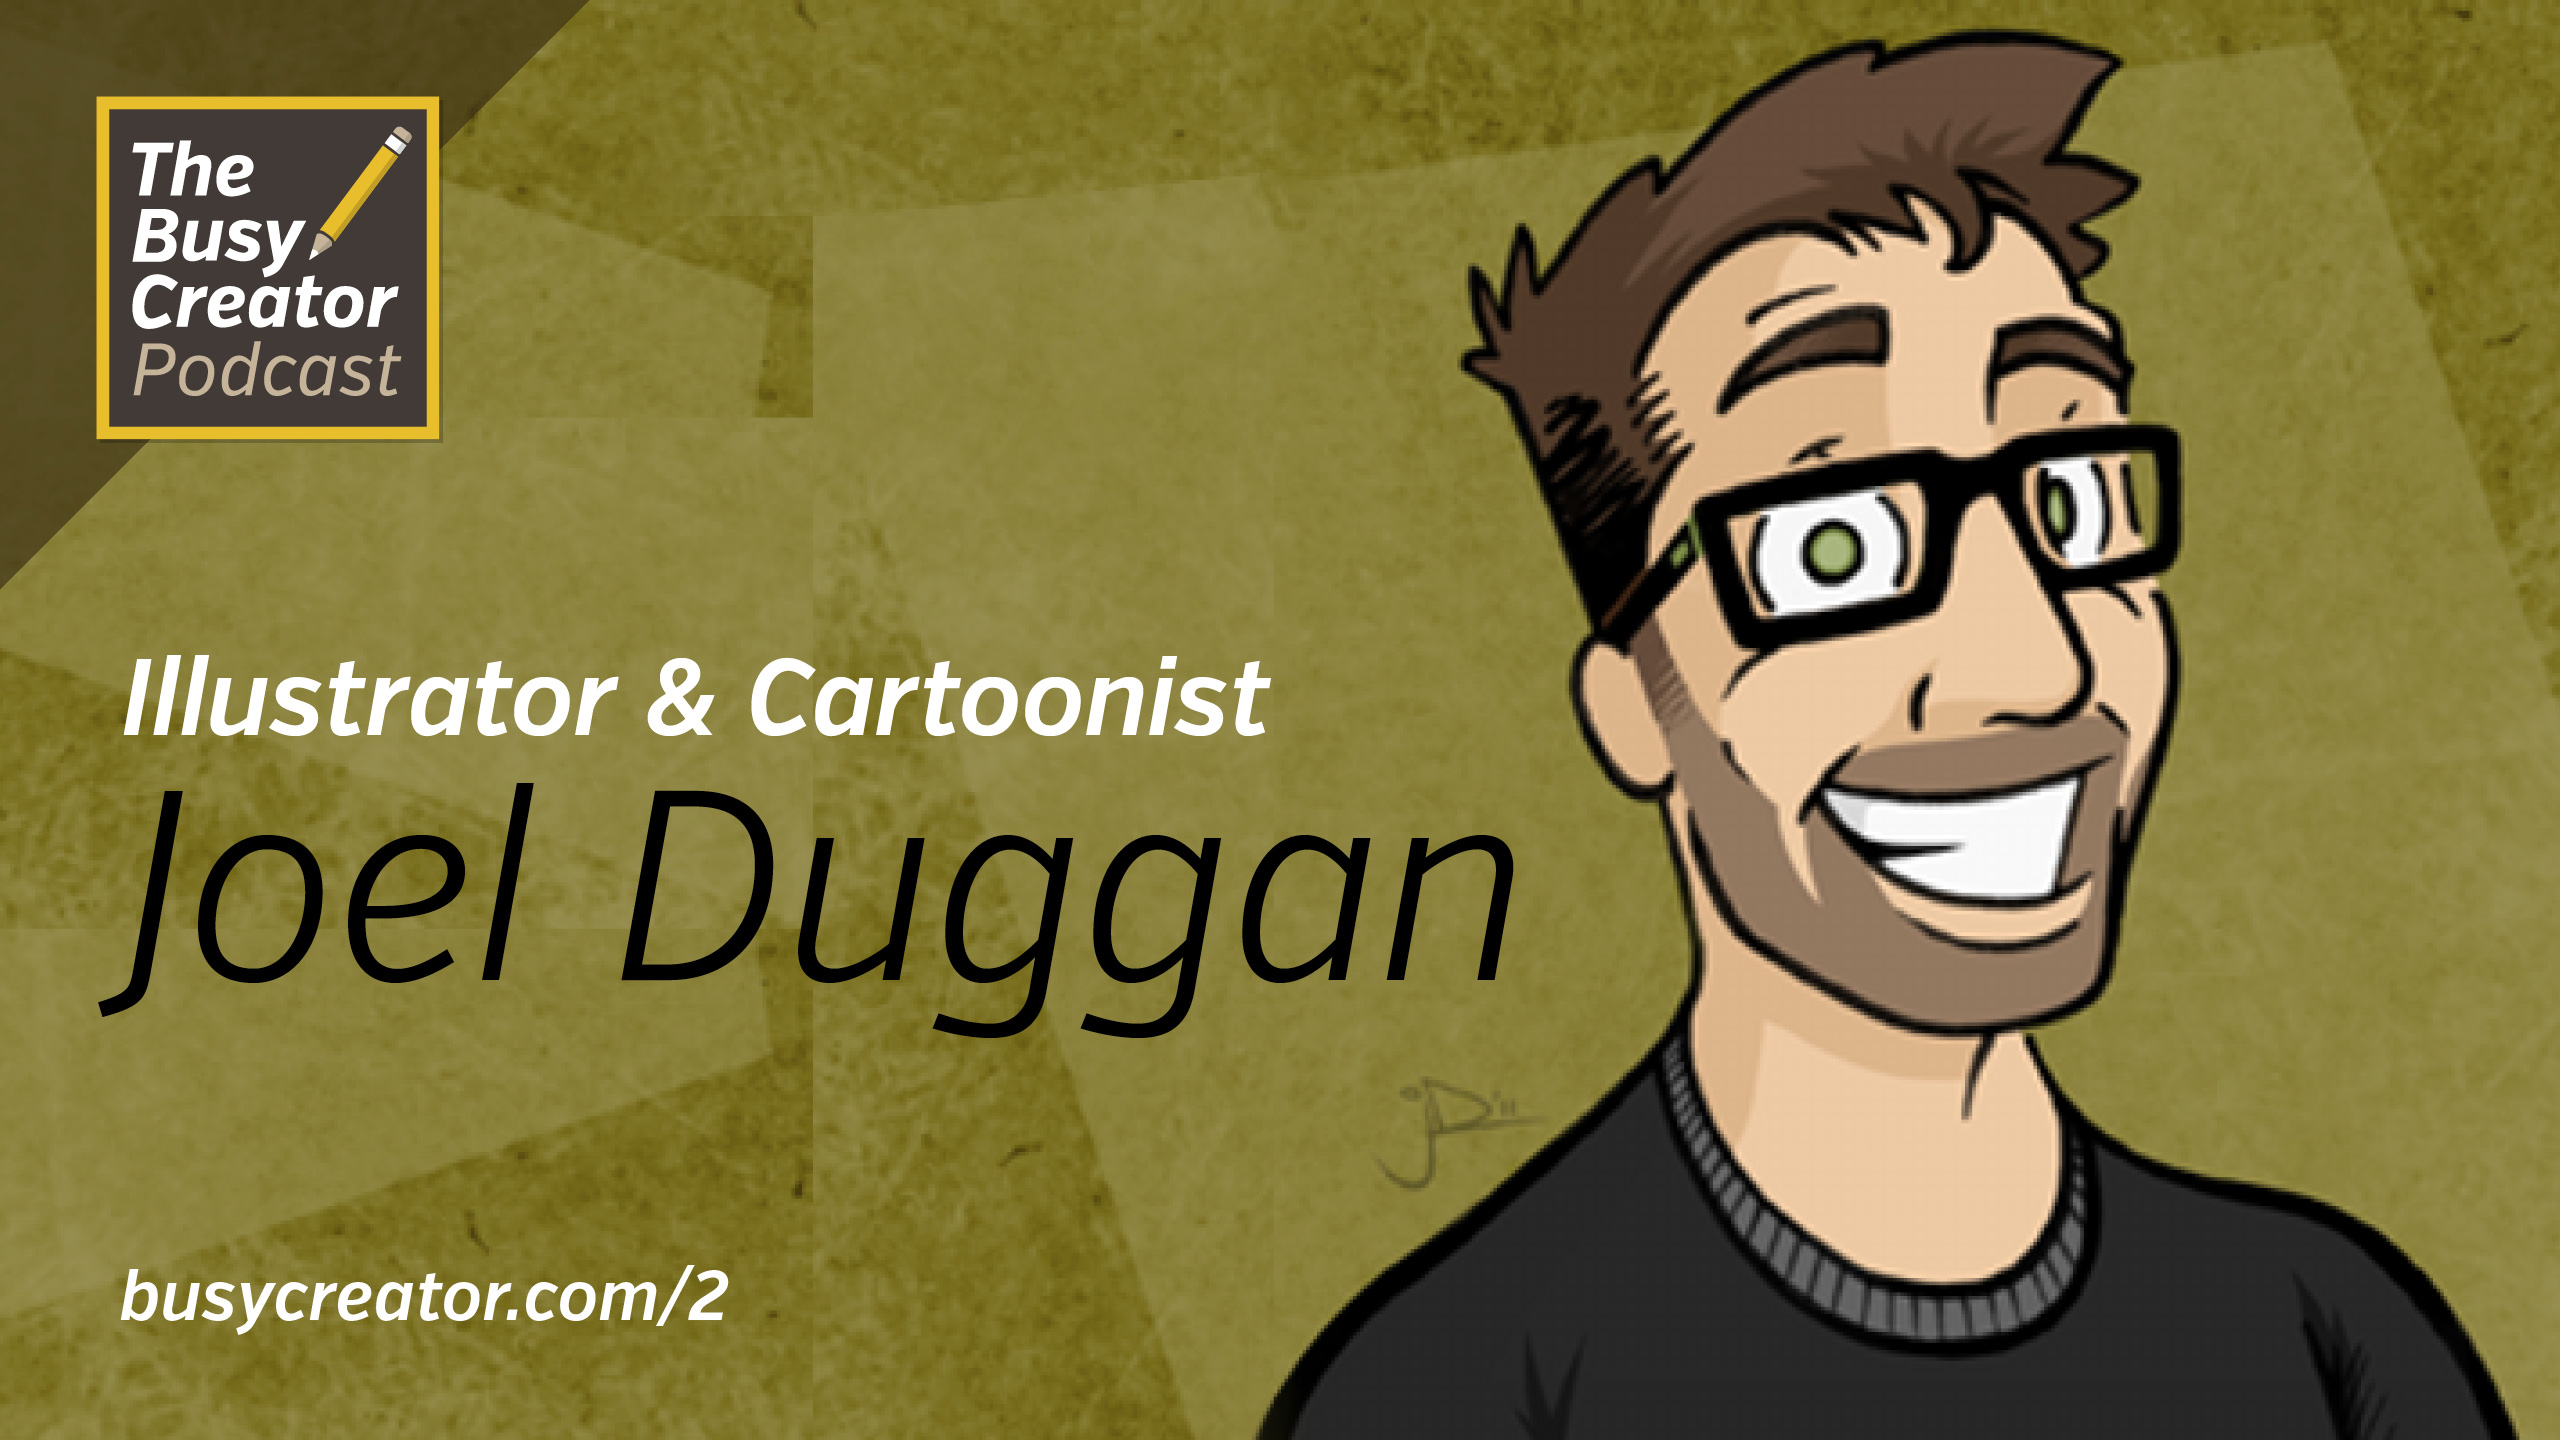 Illustrator & Cartoonist Joel Duggan Talks Daily Habits and The Tools He Relies On